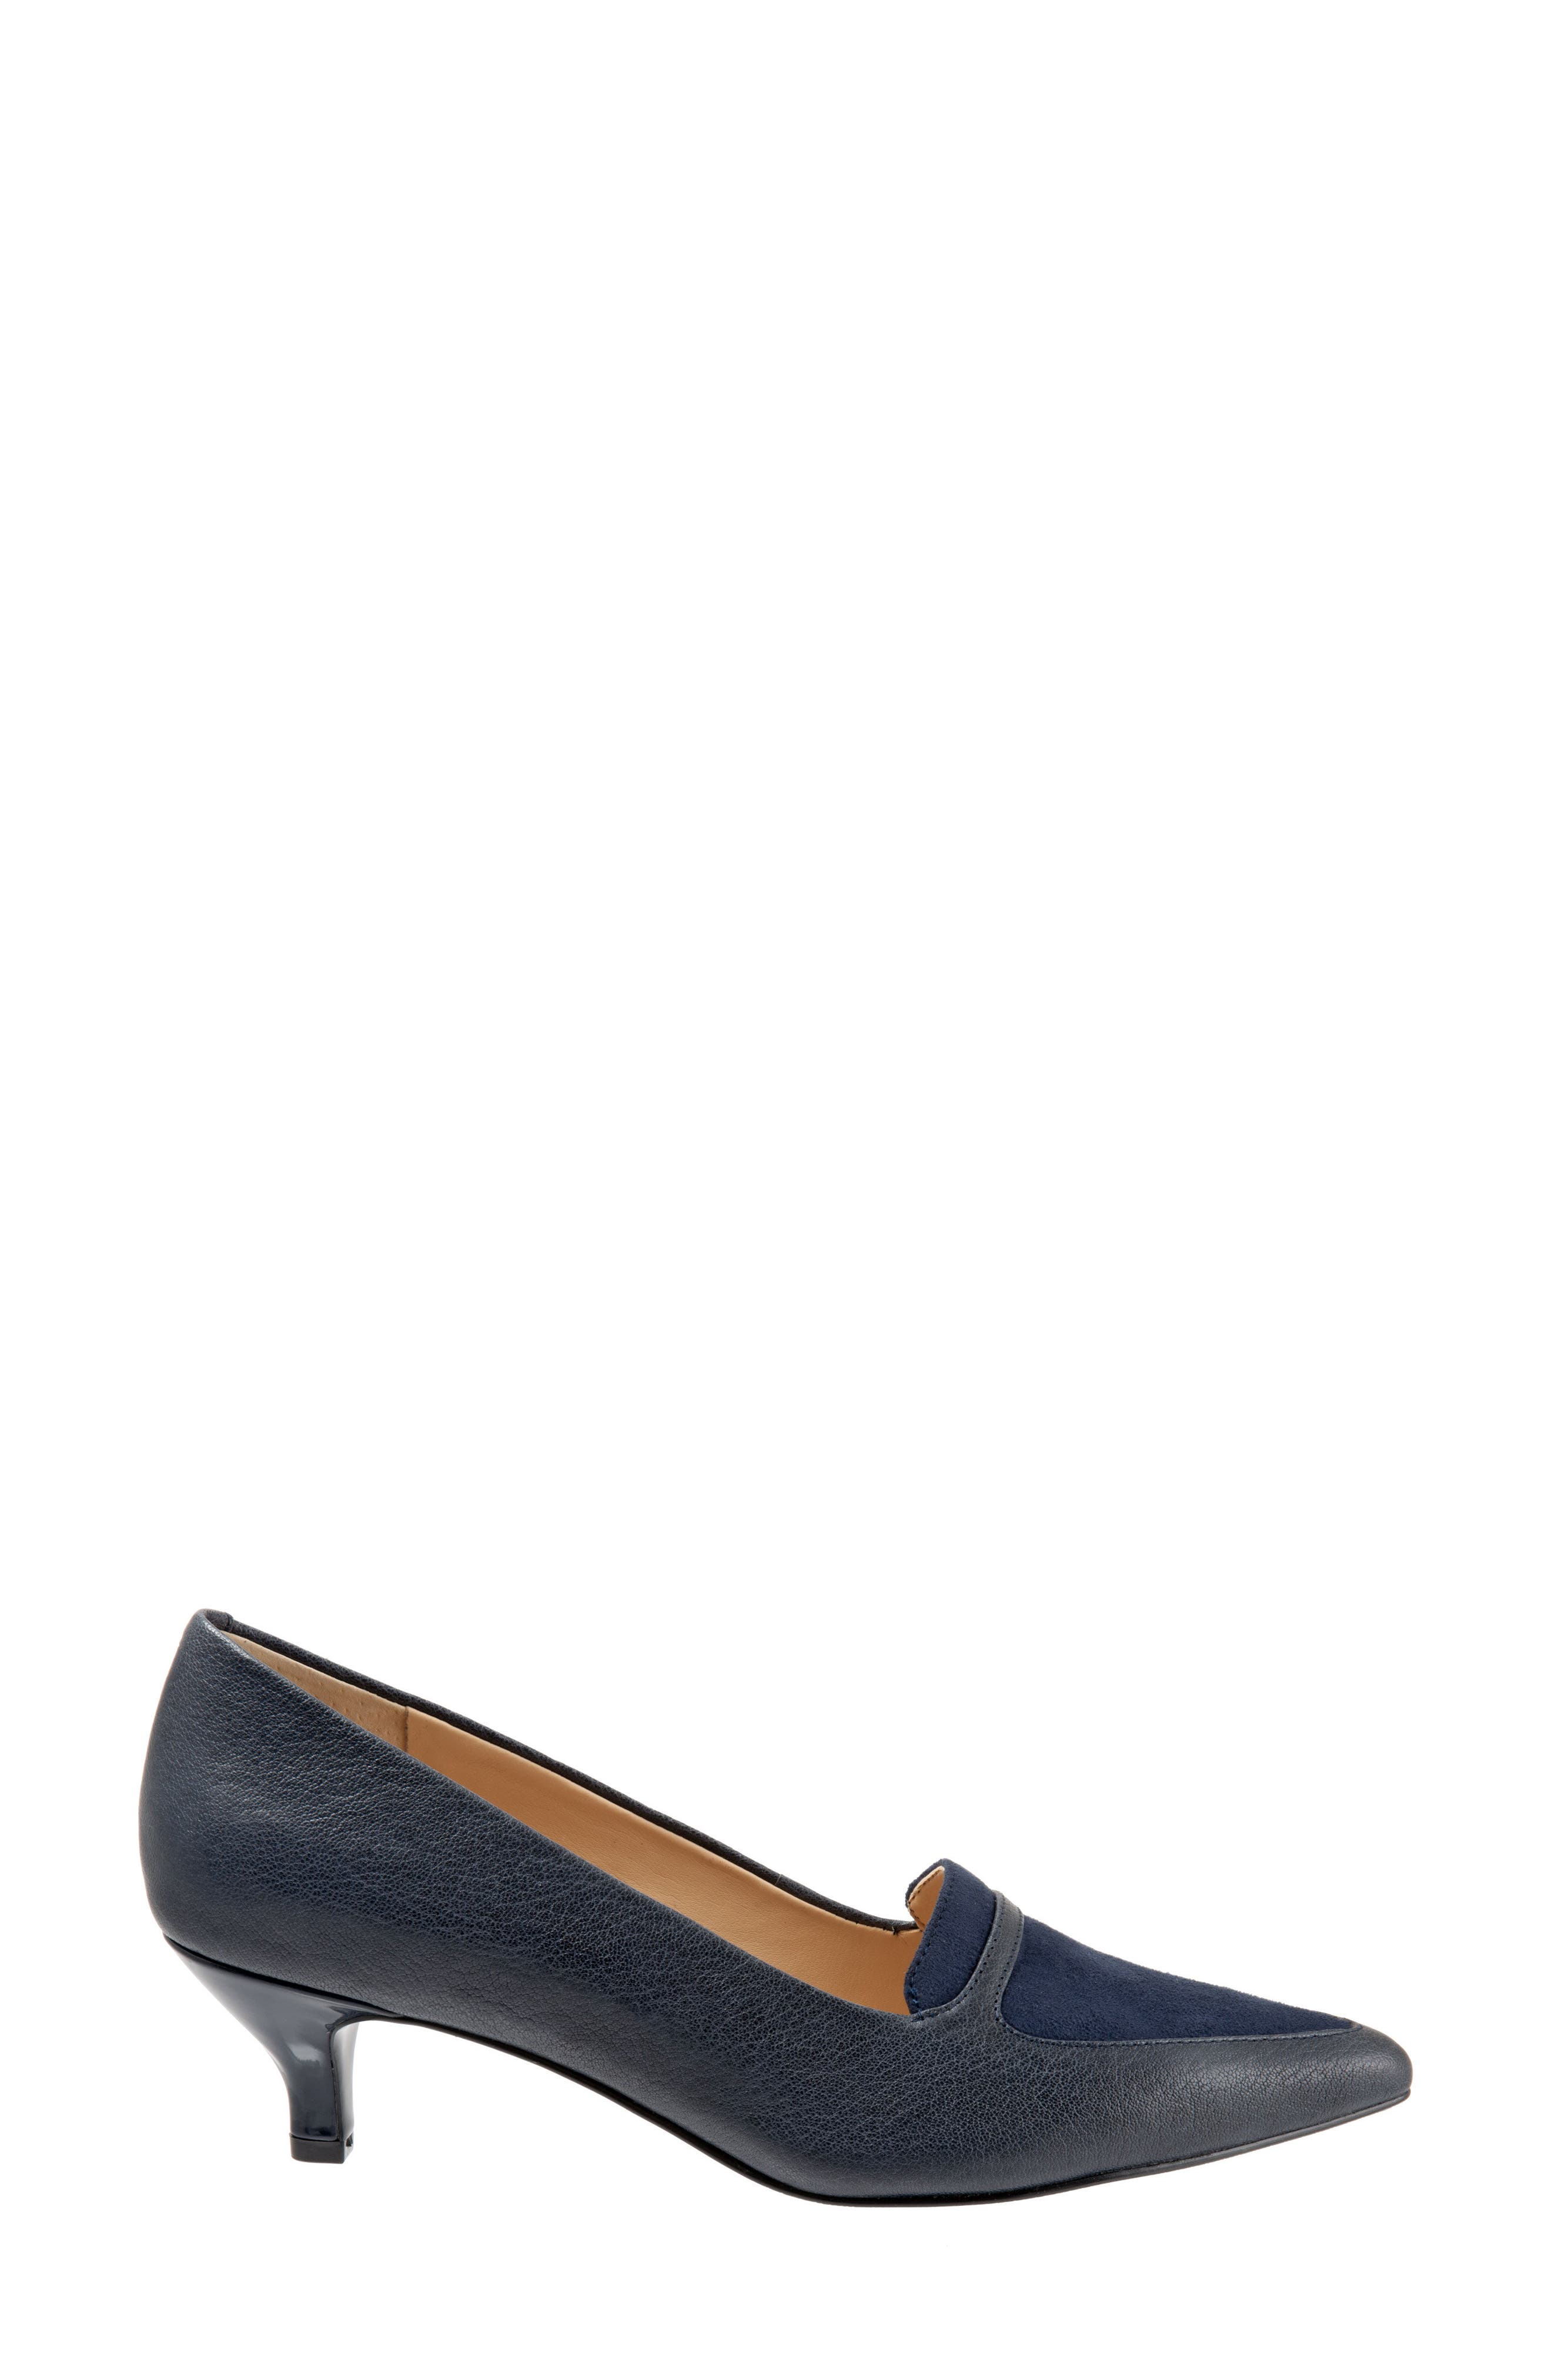 Alternate Image 3  - Trotters 'Piper' Pointy Toe Pump (Women)